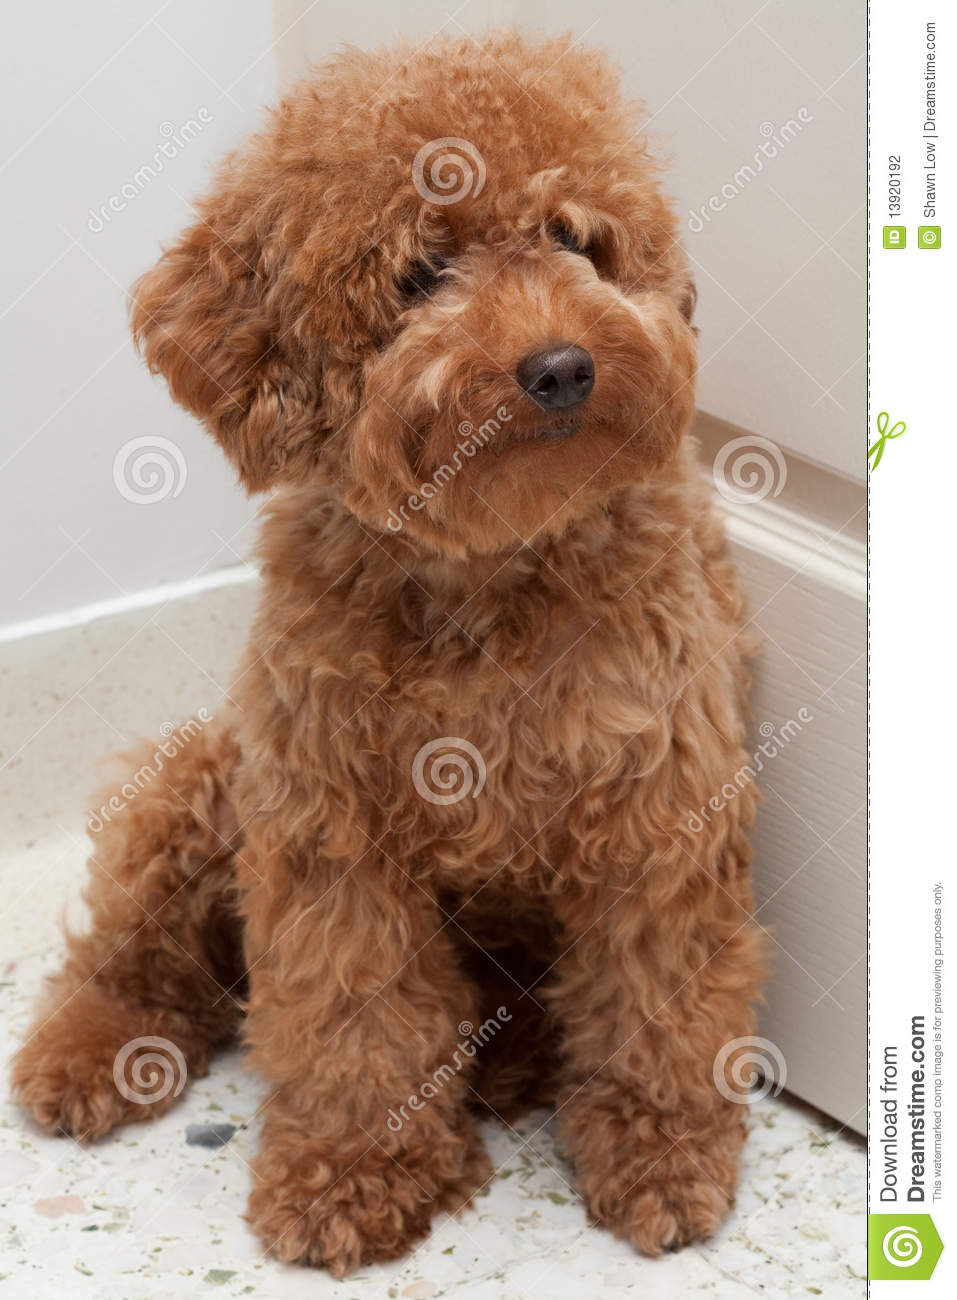 Cute Pomeranian Wallpaper Toy Poodle With A Sad Expression 4 Stock Photo Image Of